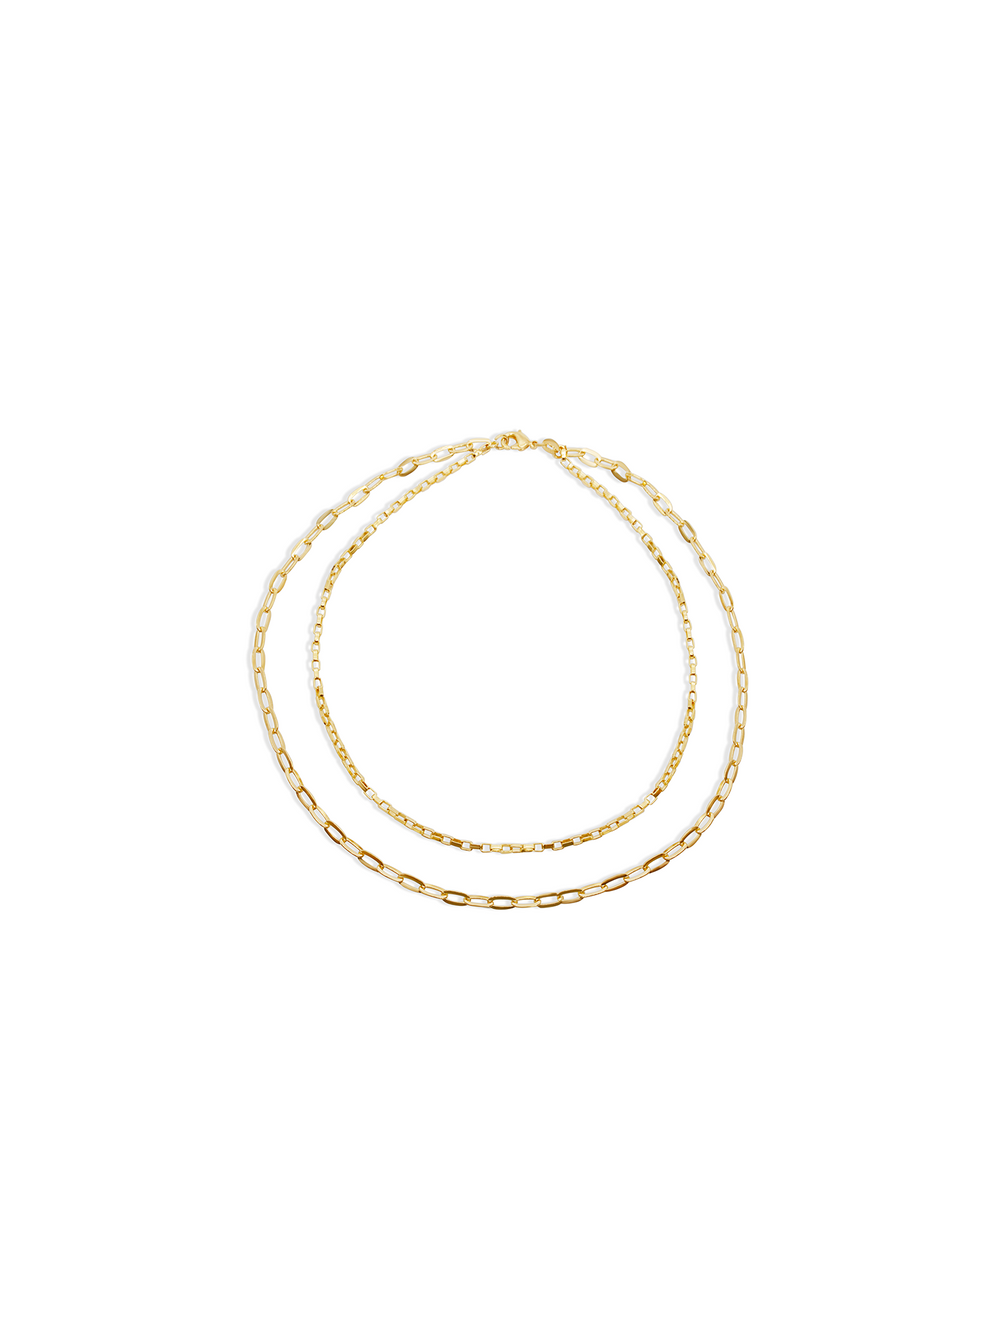 THE DOUBLE REDA LINK NECKLACE